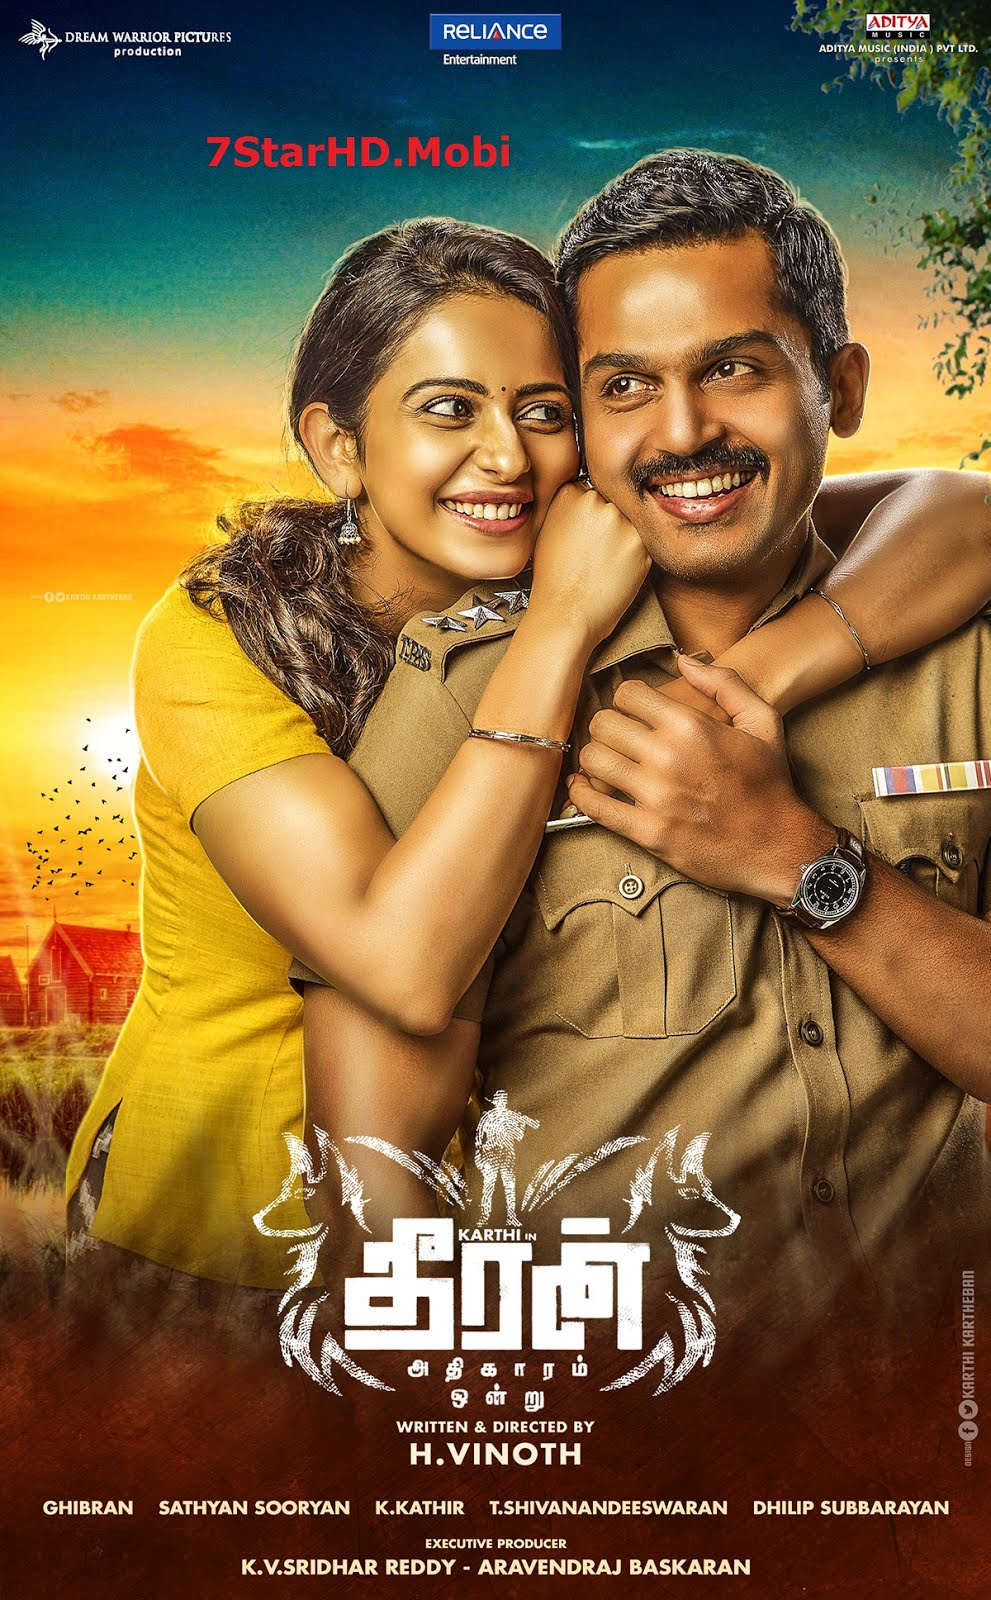 Theeran (Theeran Adhigaaram Ondru) 2018 Hindi Dubbed 720p HDRip x264 1GB